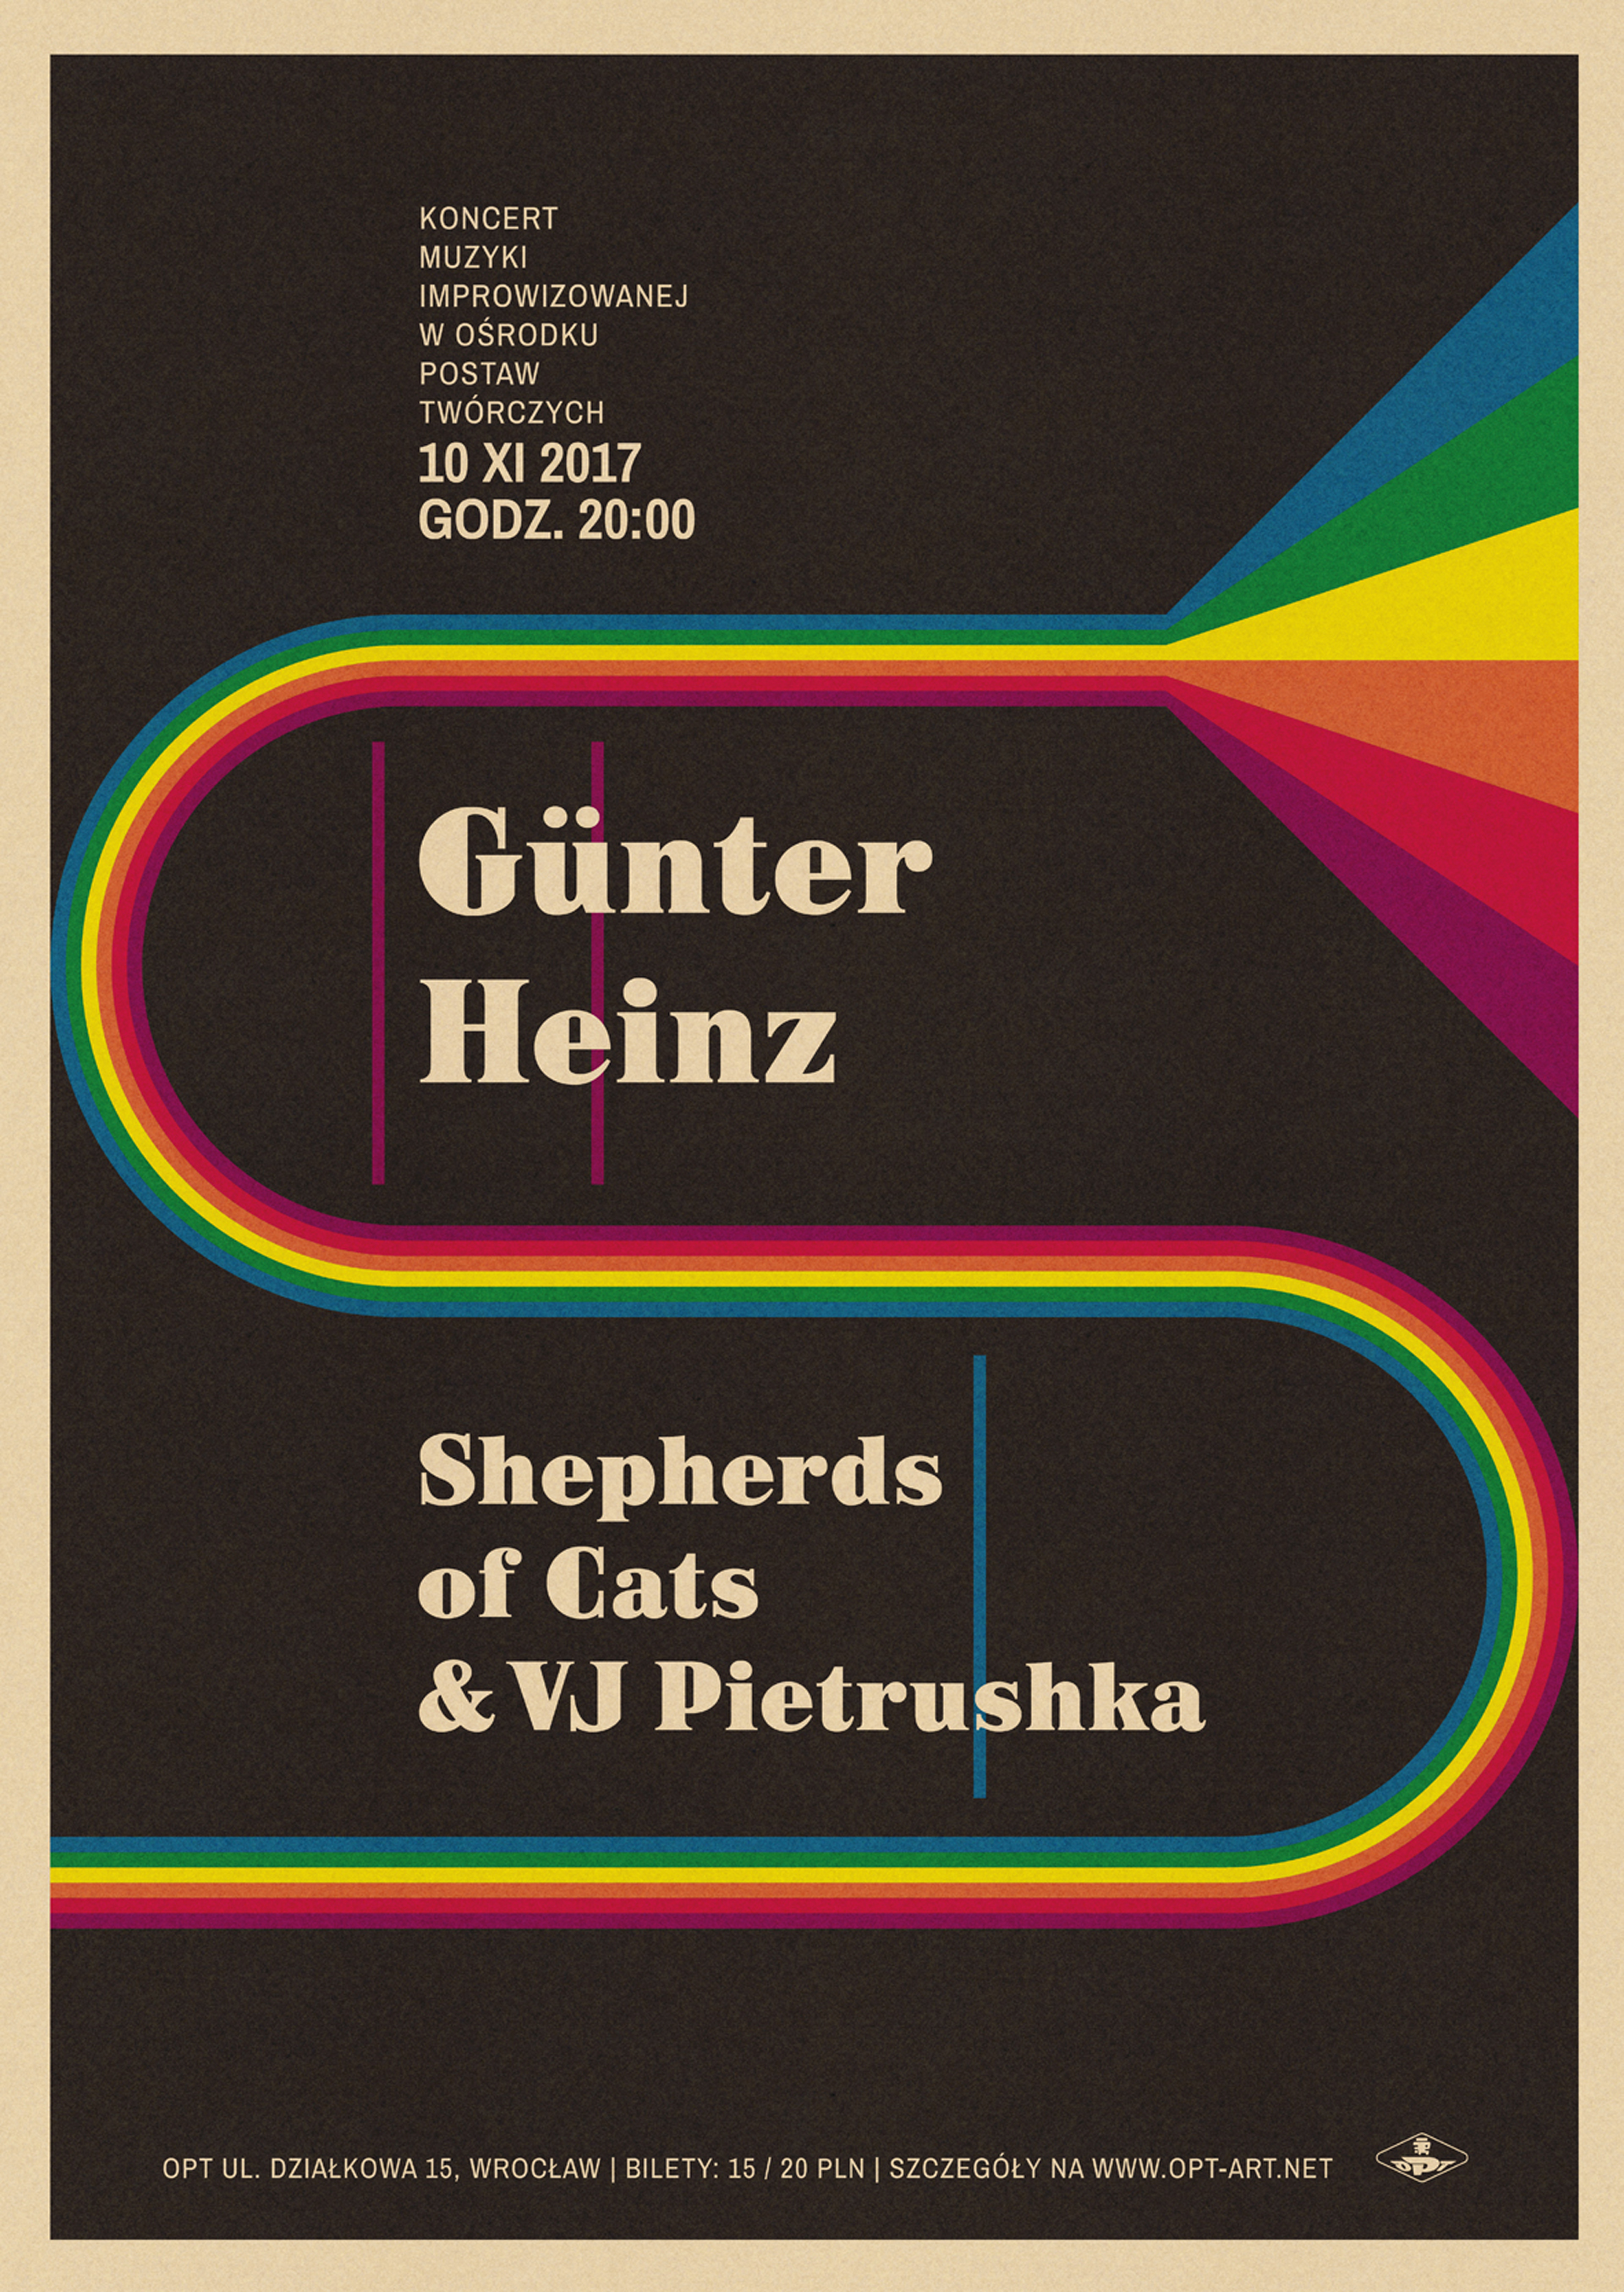 Günter Heinz & Shepherds of Cats & VJ Pietrushka